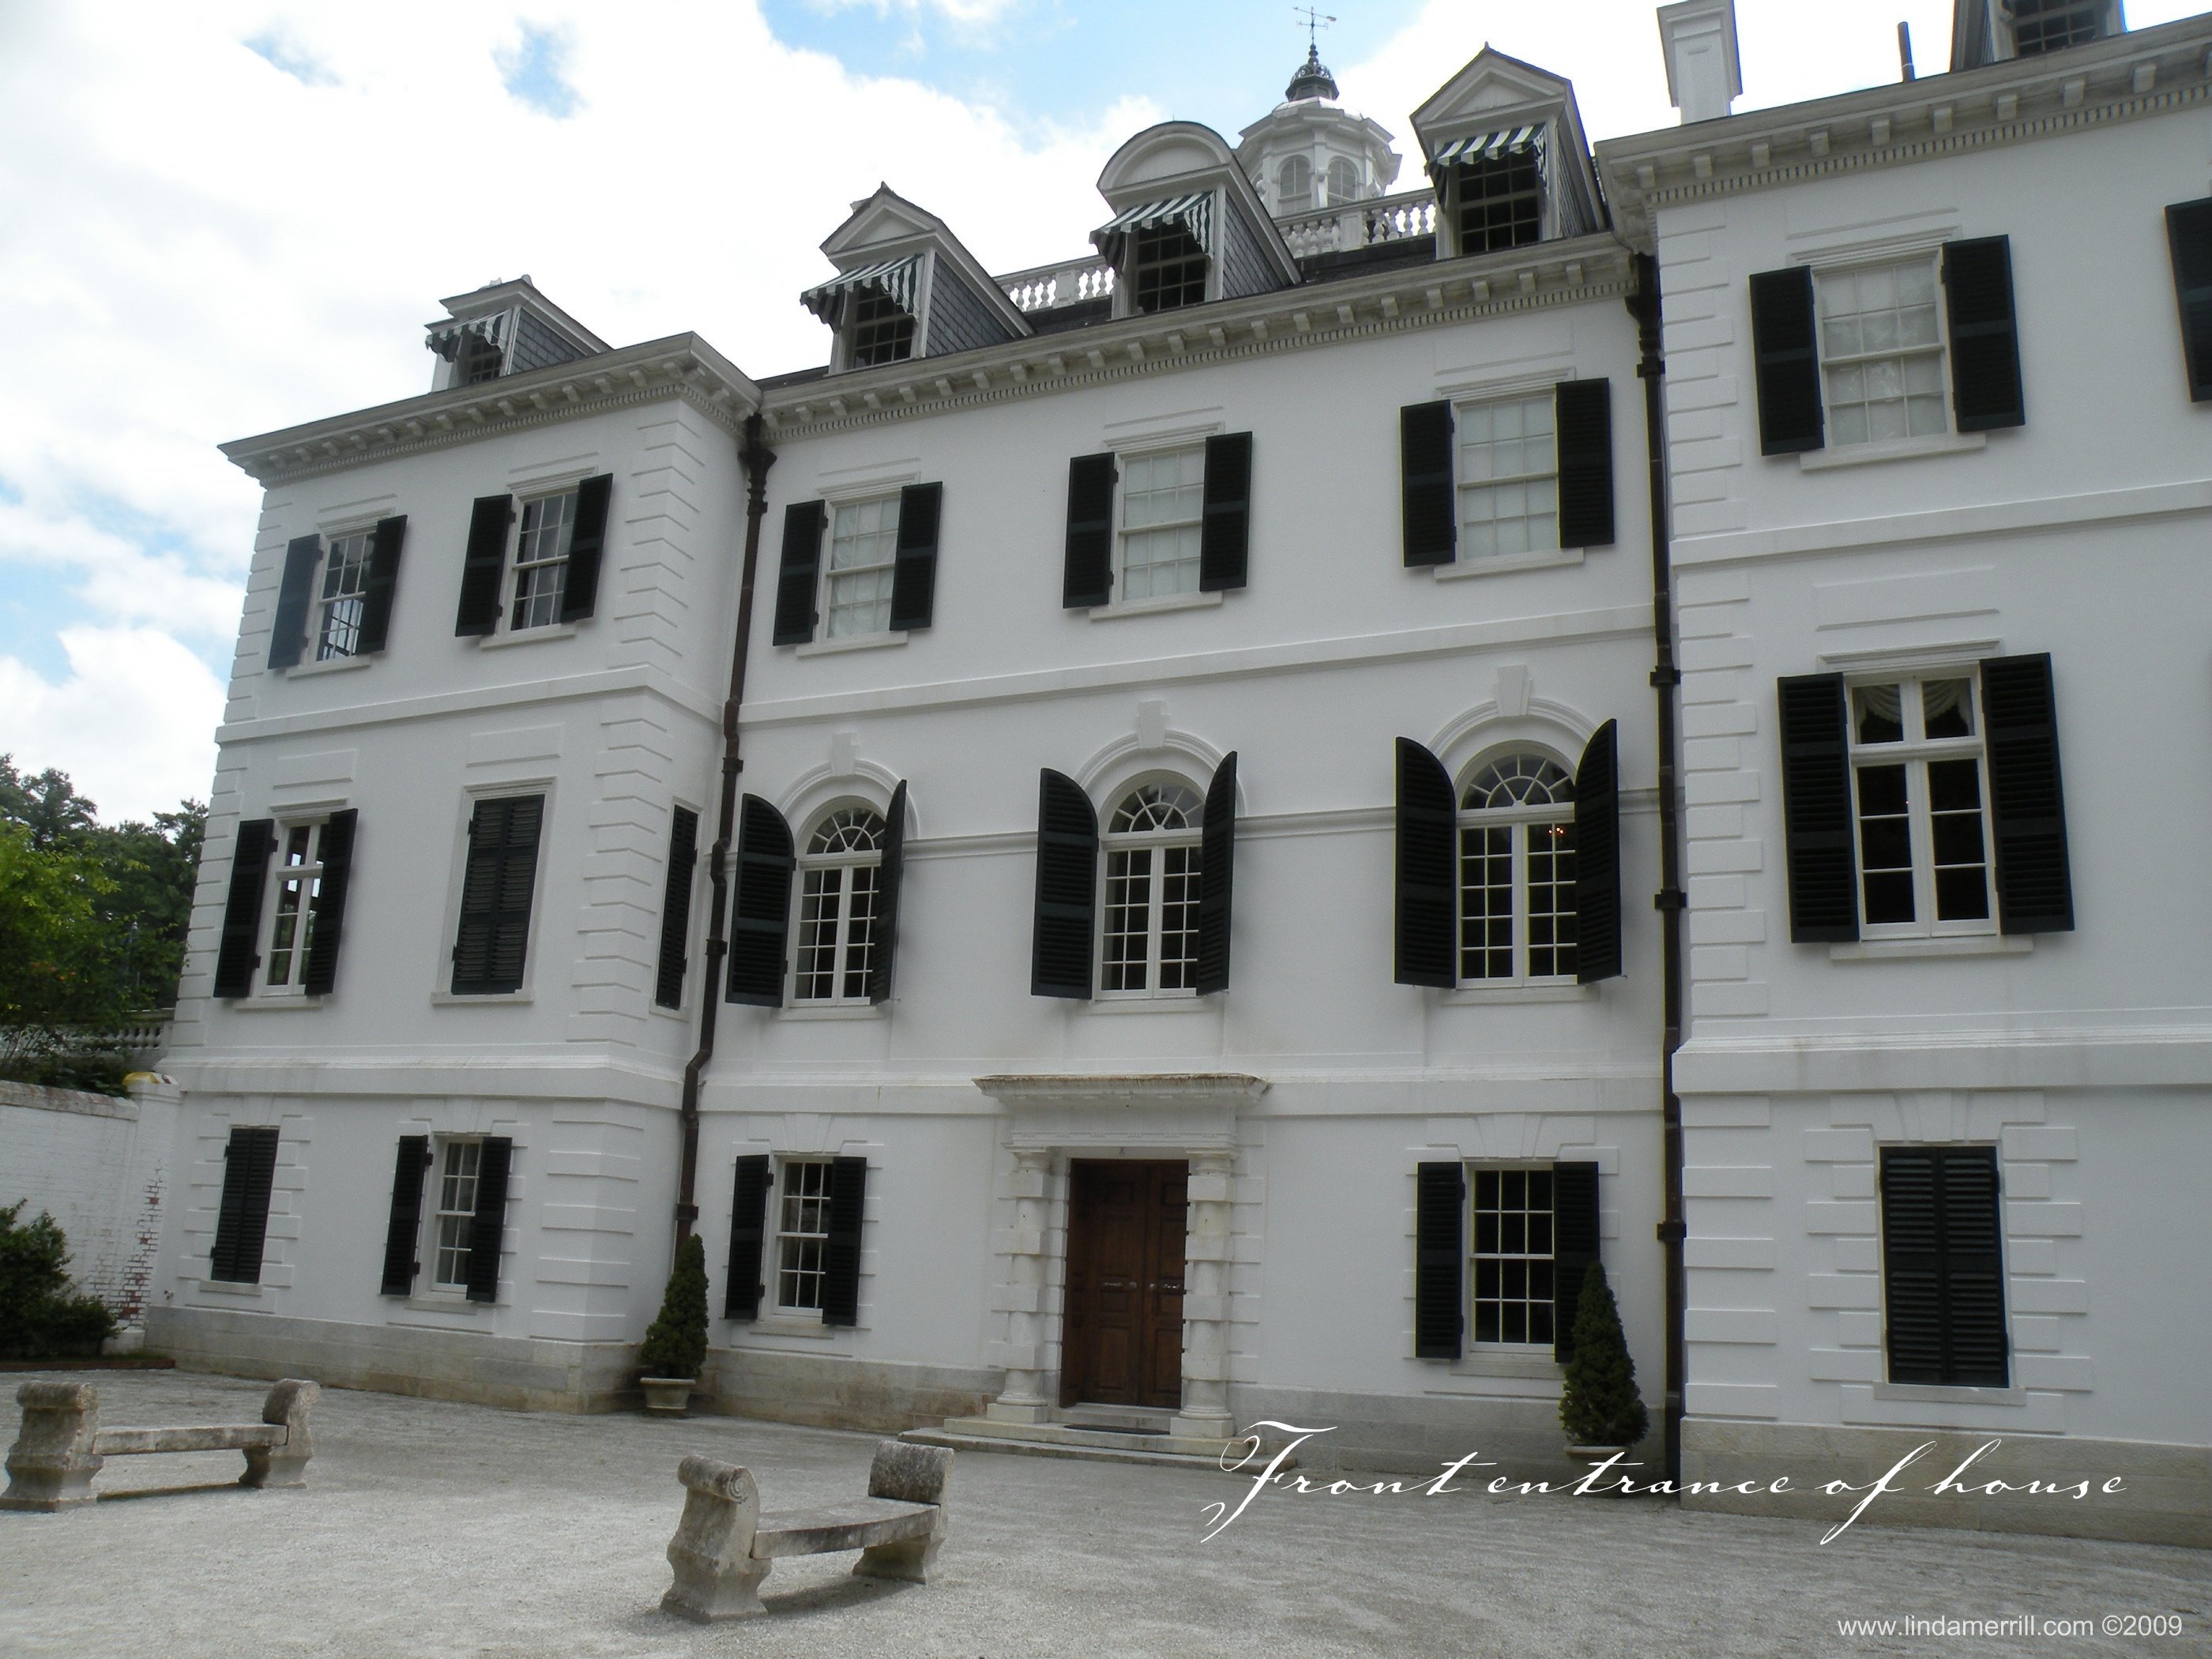 The exterior of The Mount from the forecourt. A white house with black shutters.